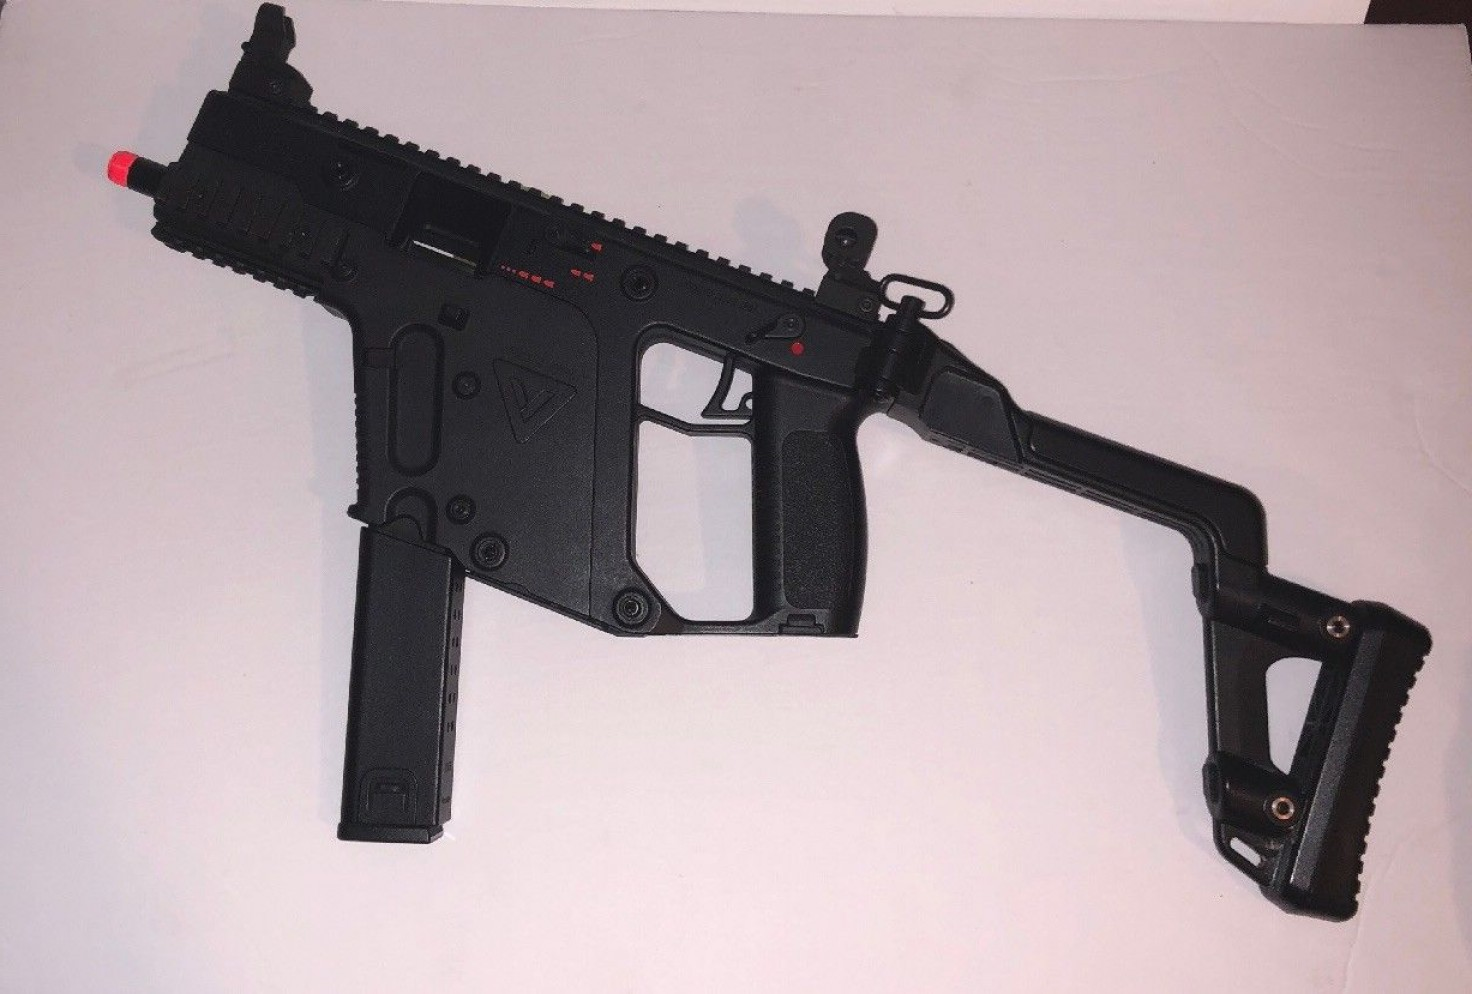 KWA KRISS Vector Parts: Airsoft Kwa Kriss Vector Gbb